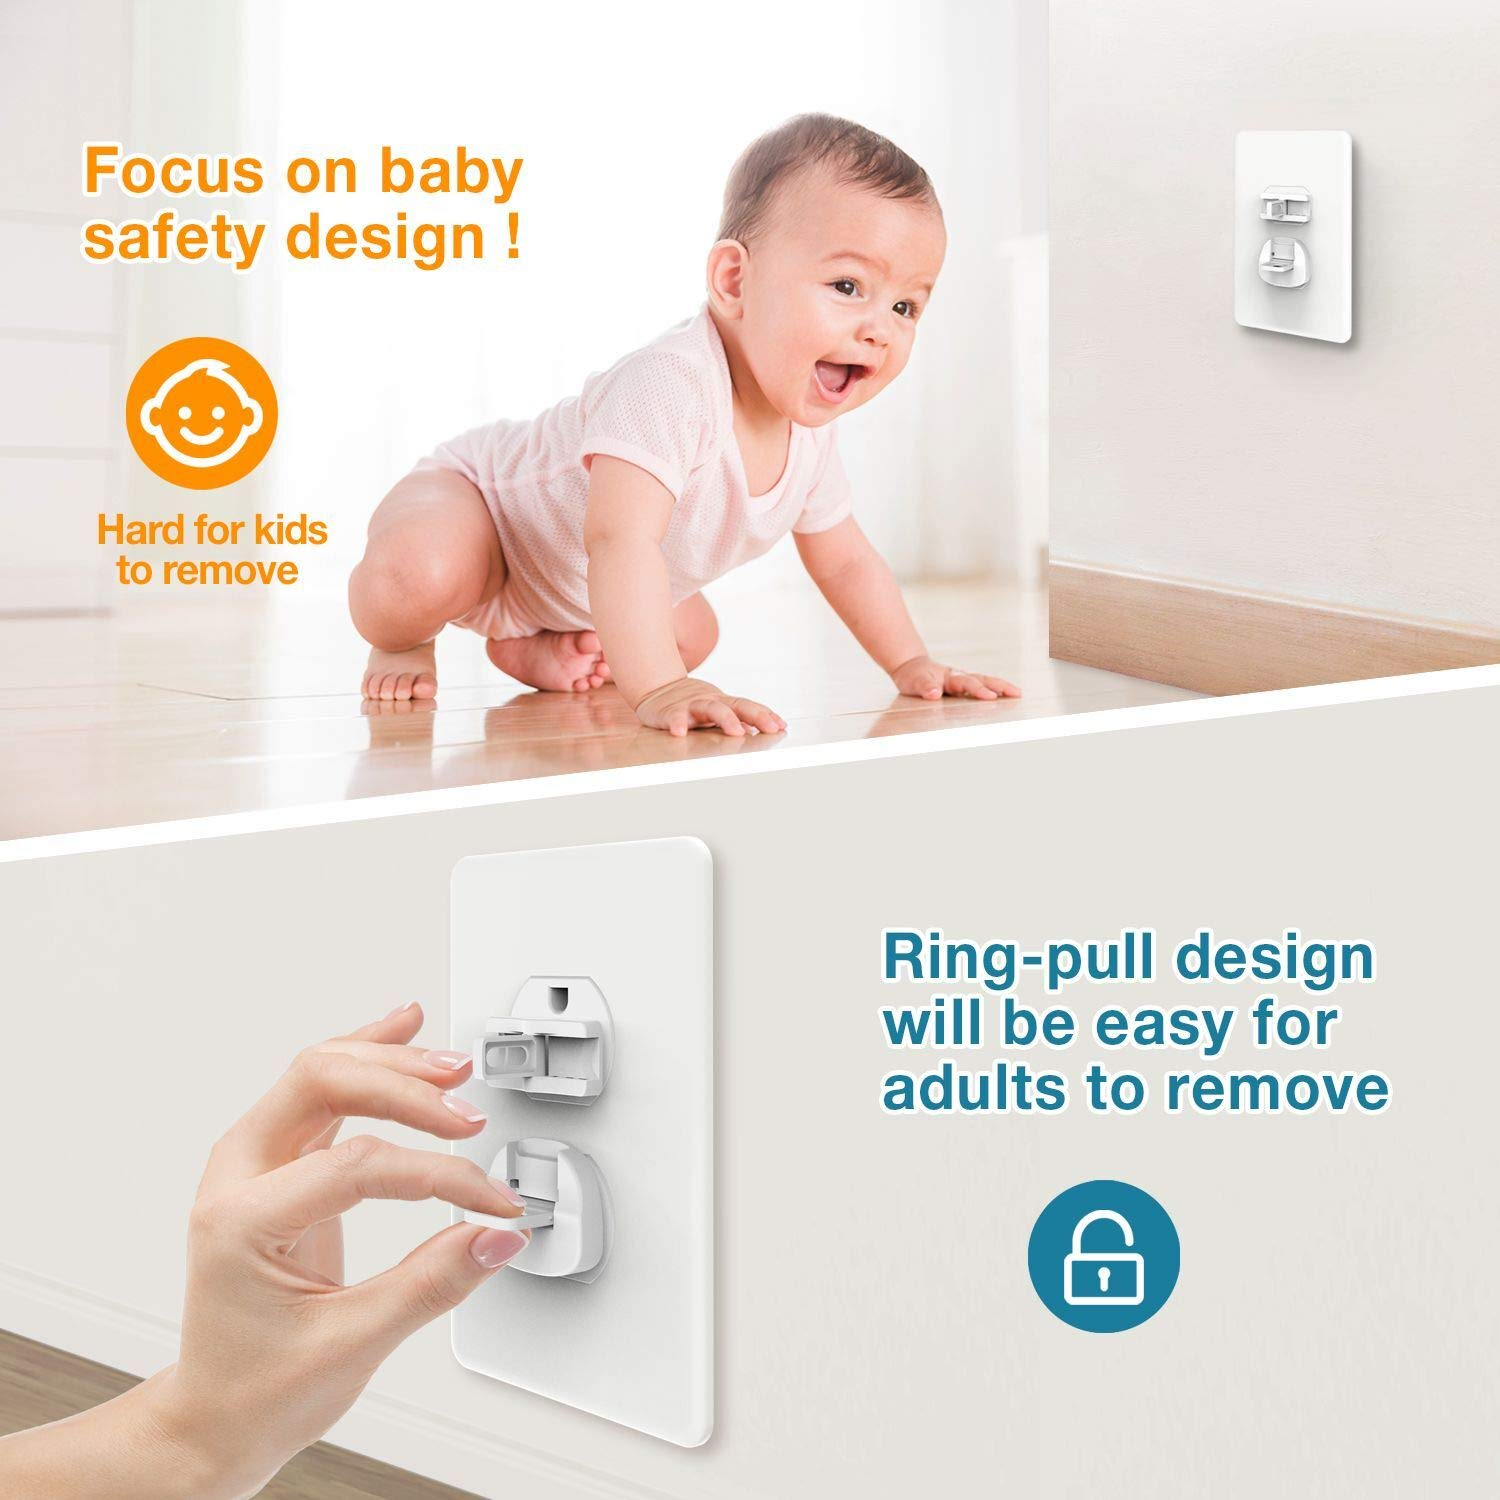 Plug Protector Guards Against Shocks Original Design 2-Prong /& 3-Prong Outlet Covers Child Proof 50 Pack Outlet Covers Baby Proofing with Hidden Ring-Pull Handle Easy Installation